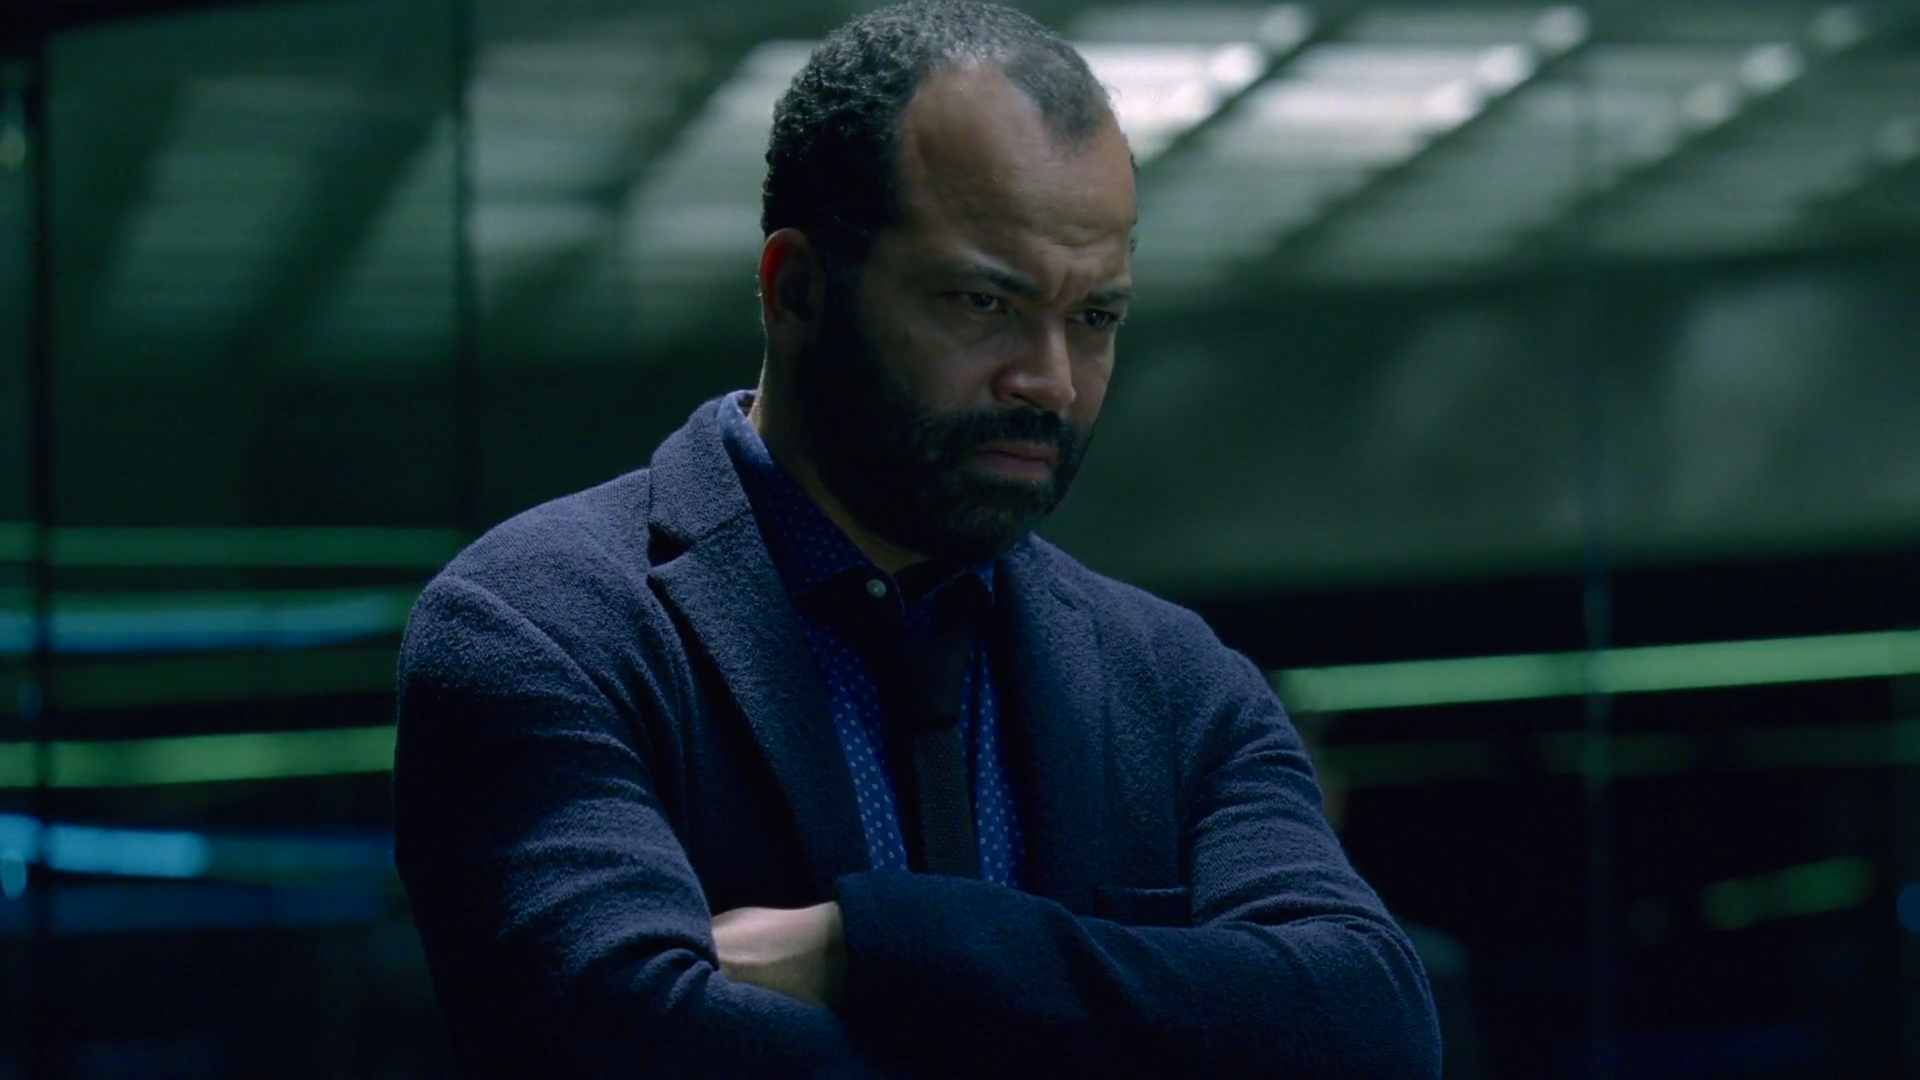 Ranking The Potential Saviors Of Westworld's Human Race